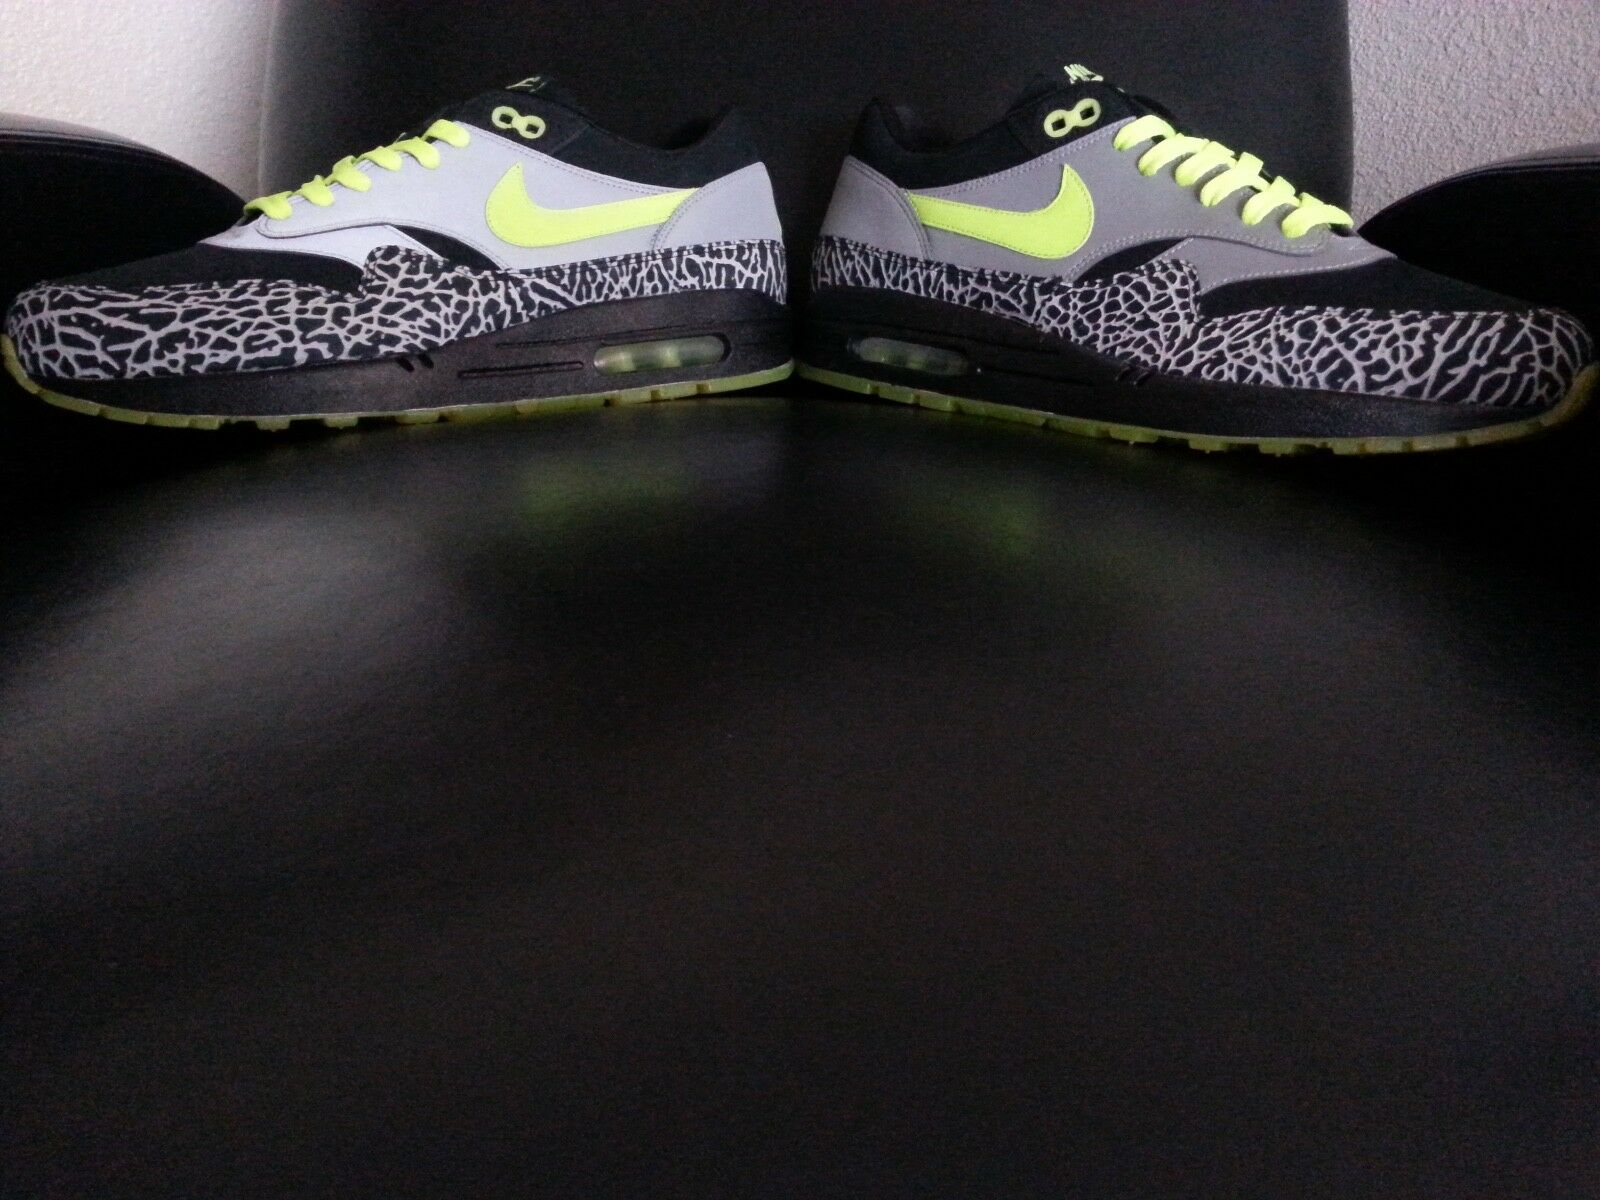 Nike Air Max 1 Premium 2008 DJ Clark Kent 112 Black Neon Yellow Size 10.5 (New )